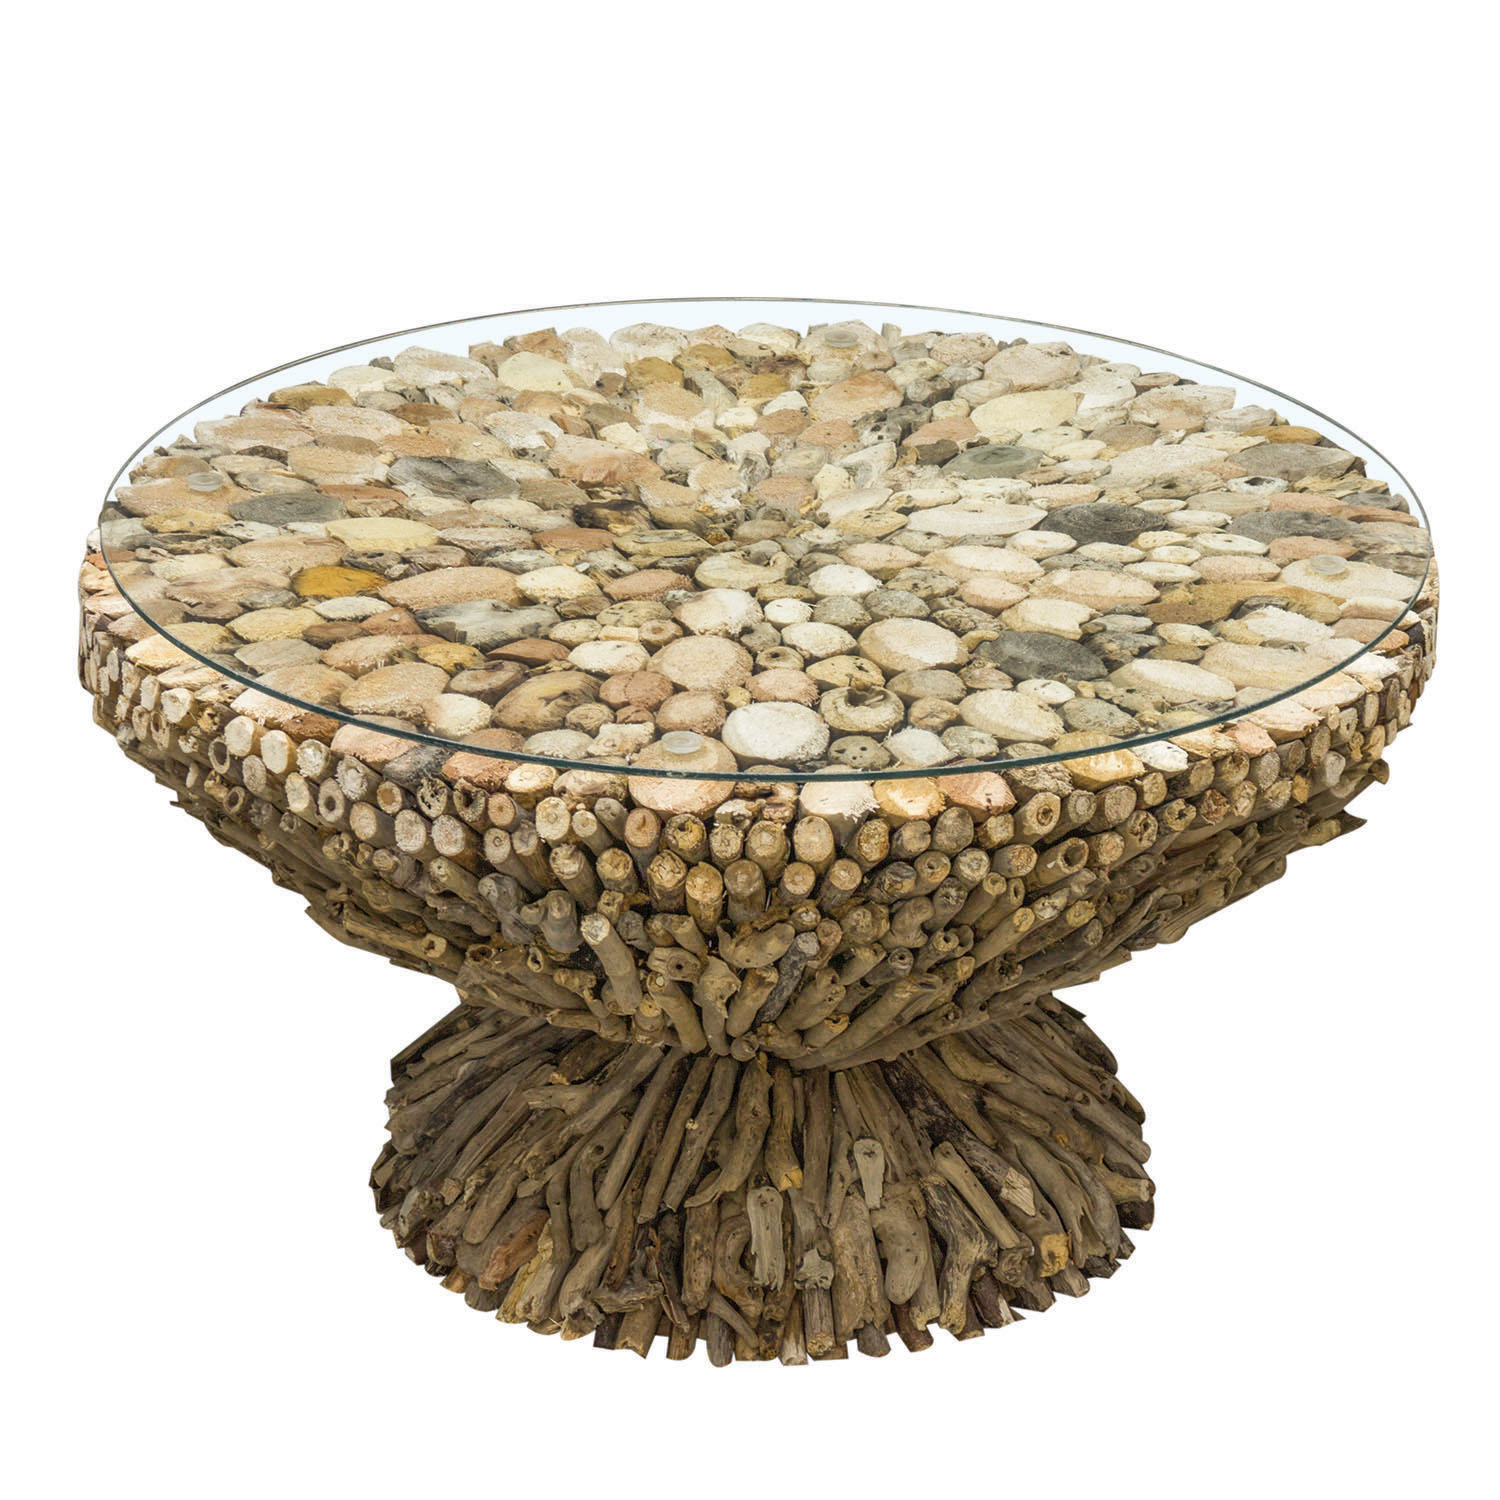 Charnwood Round Coffee Table with Glass Top